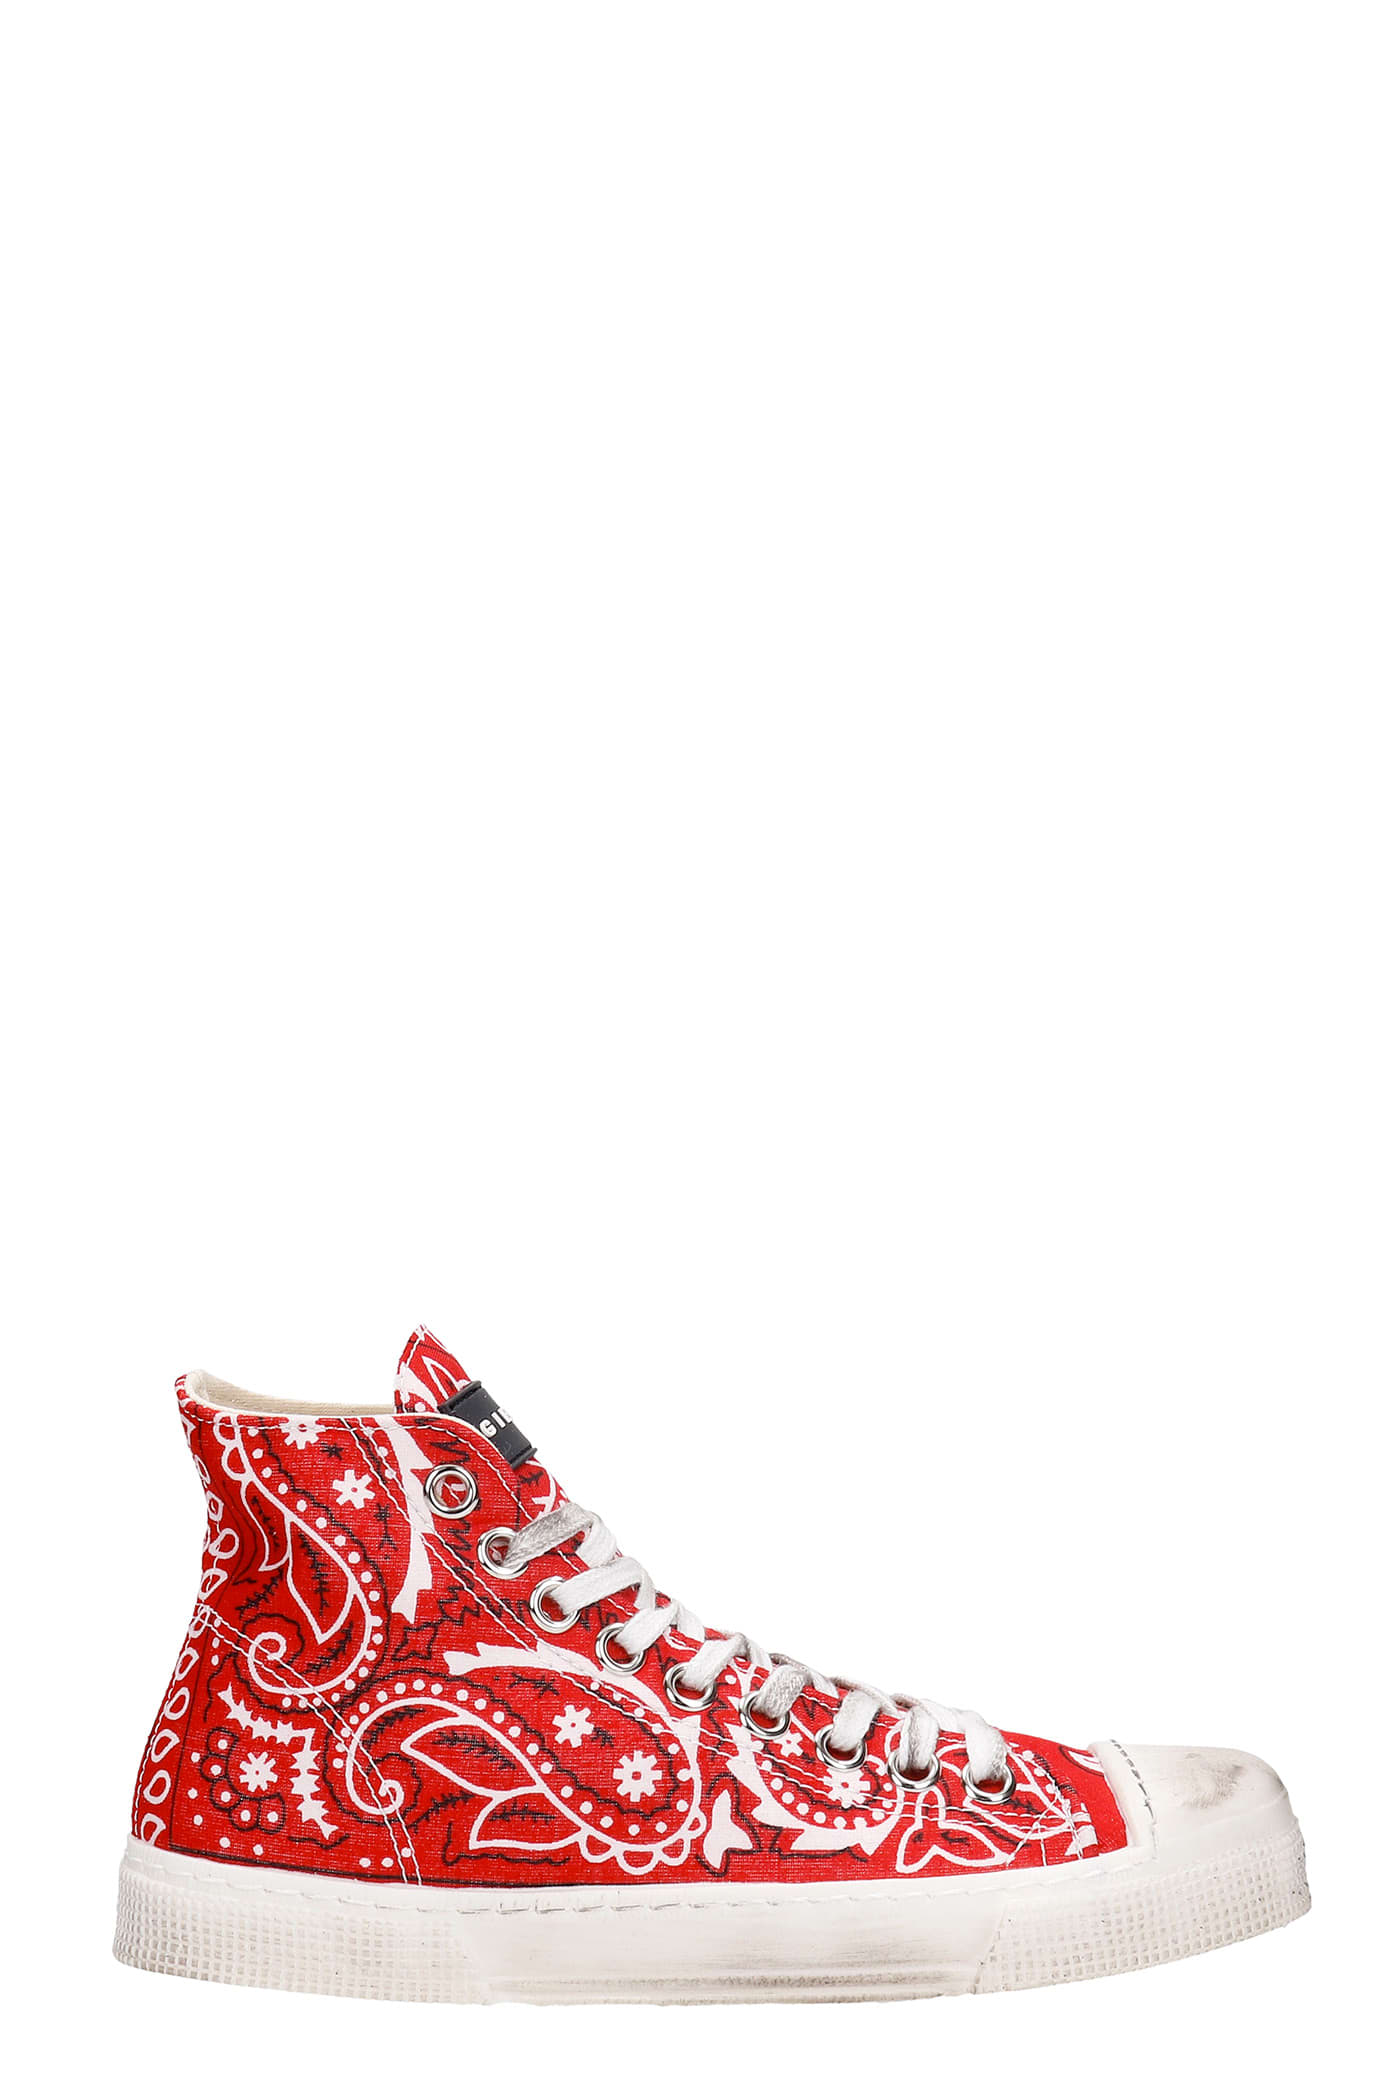 J.m High Sneakers In Red Synthetic Fibers